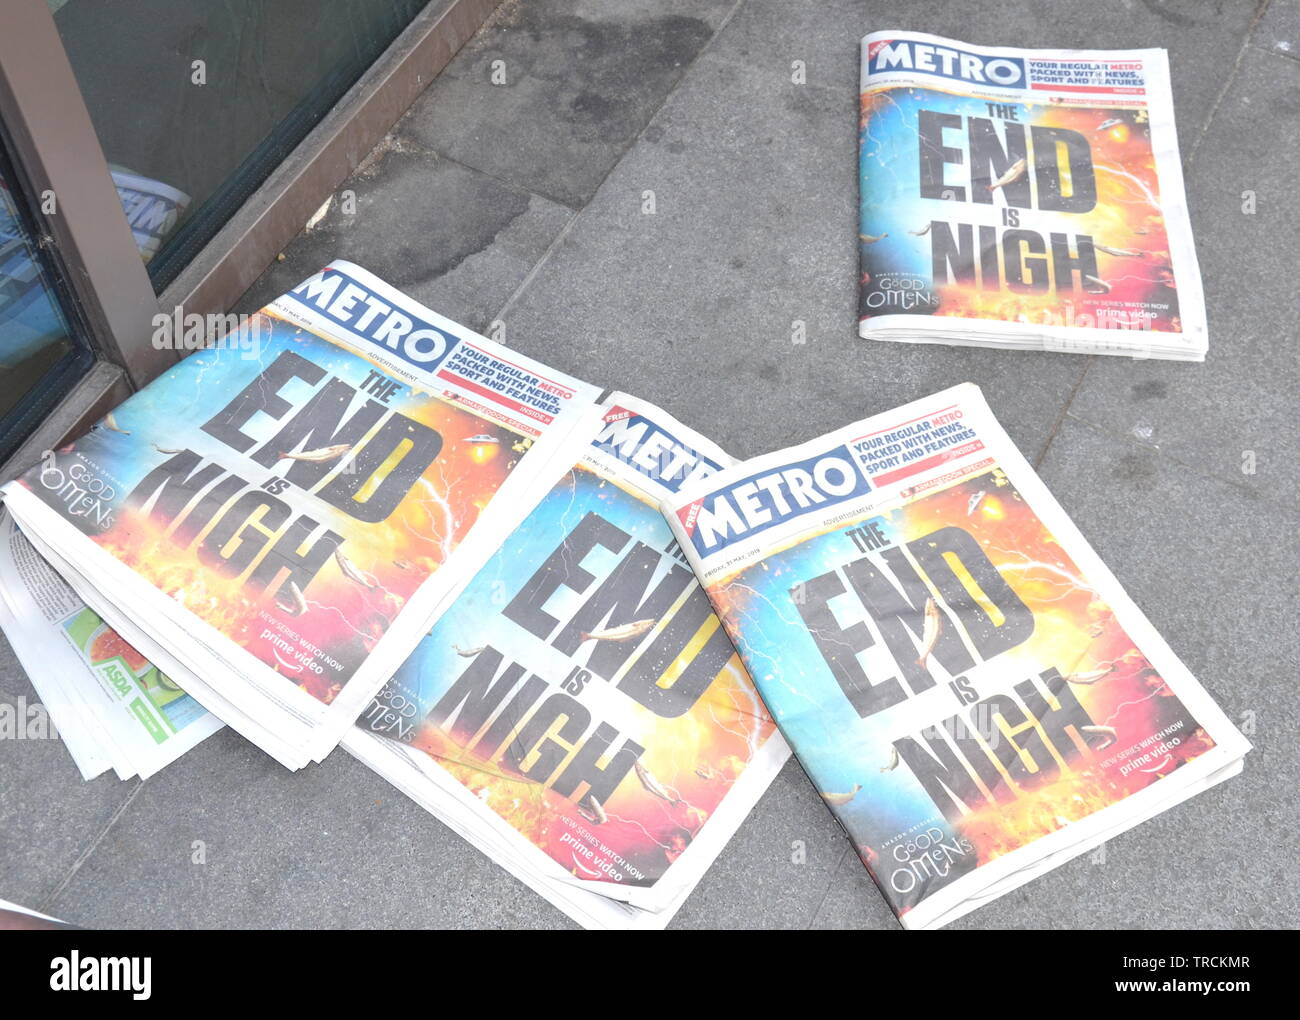 Copies of the Metro newspaper, dated May 31, 2019, with 'The End is Nigh' front page to advertise 'Good Omens' on Amazon Prime video - Stock Image